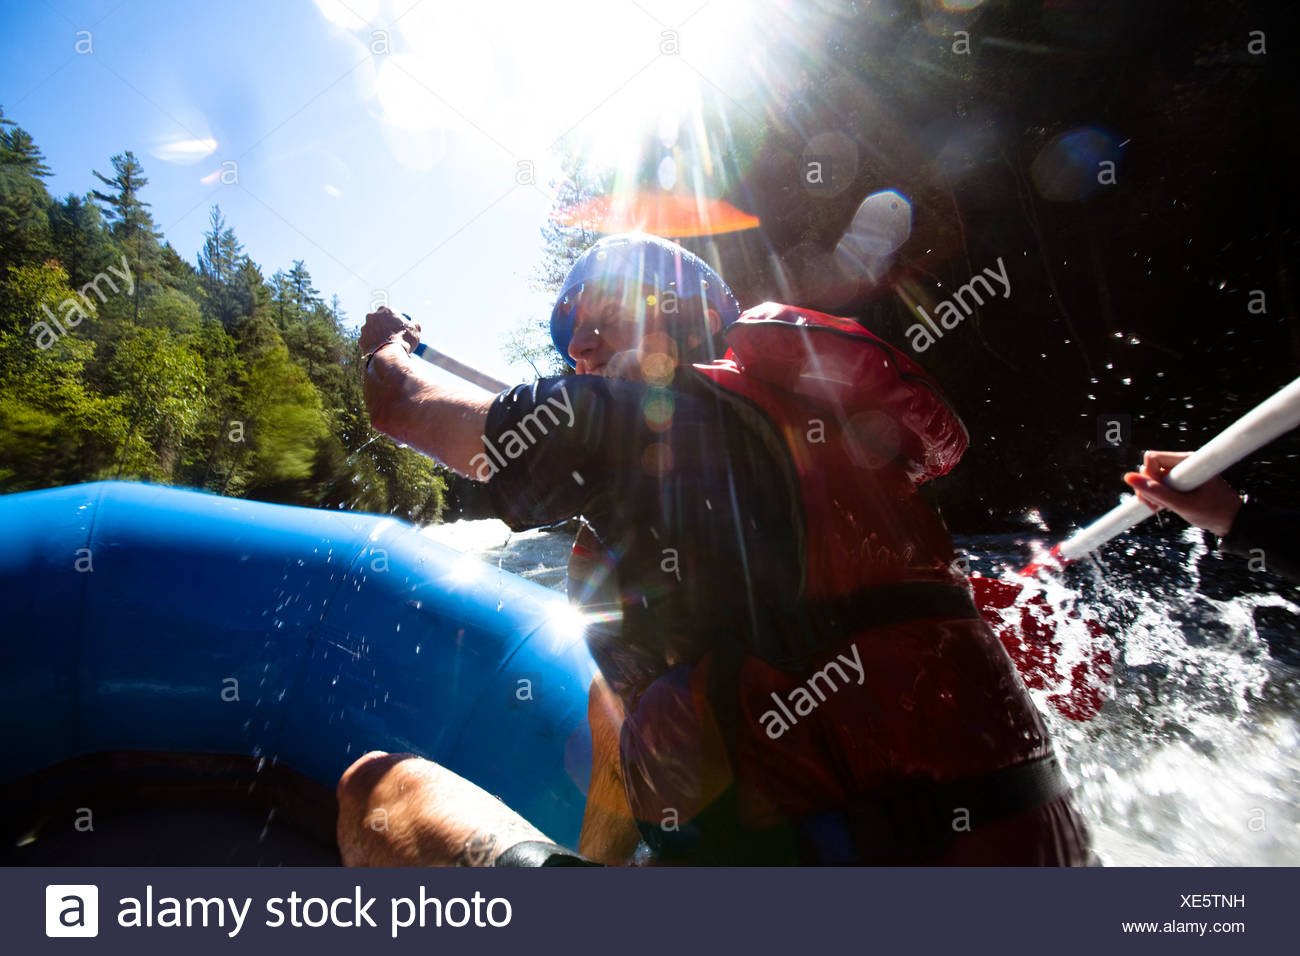 A young man paddles down a river while whitewater rafting. - Stock Image